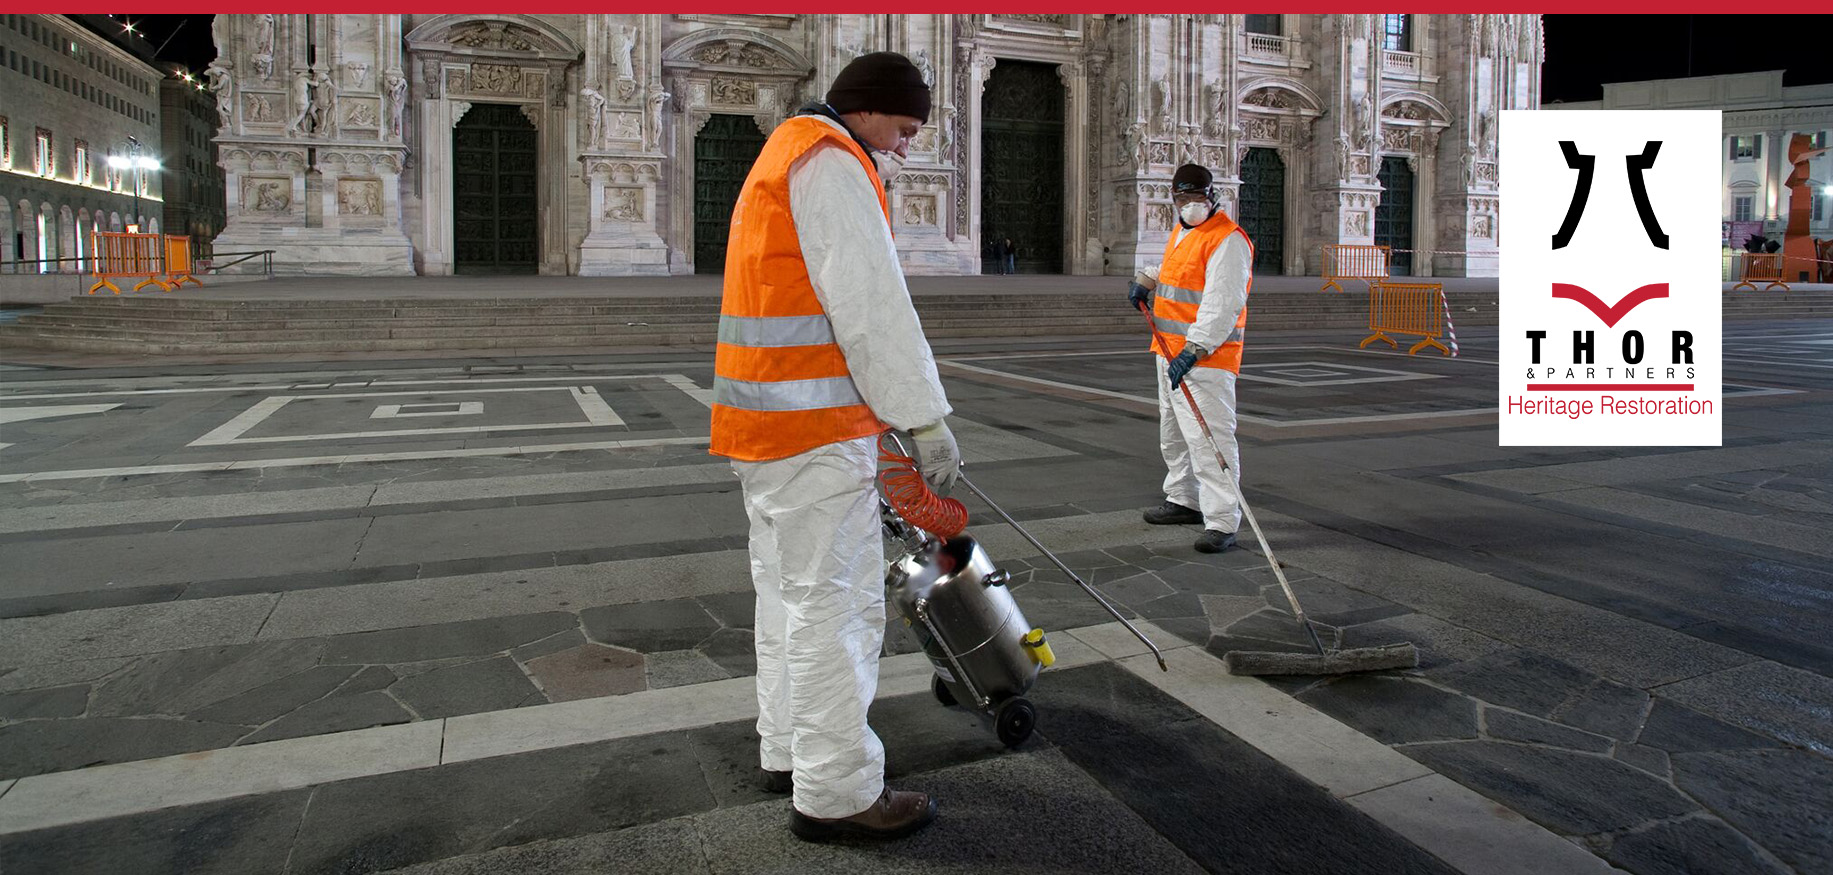 Thor & Partners . Heritage . milan cathedral restoration and cleaning work